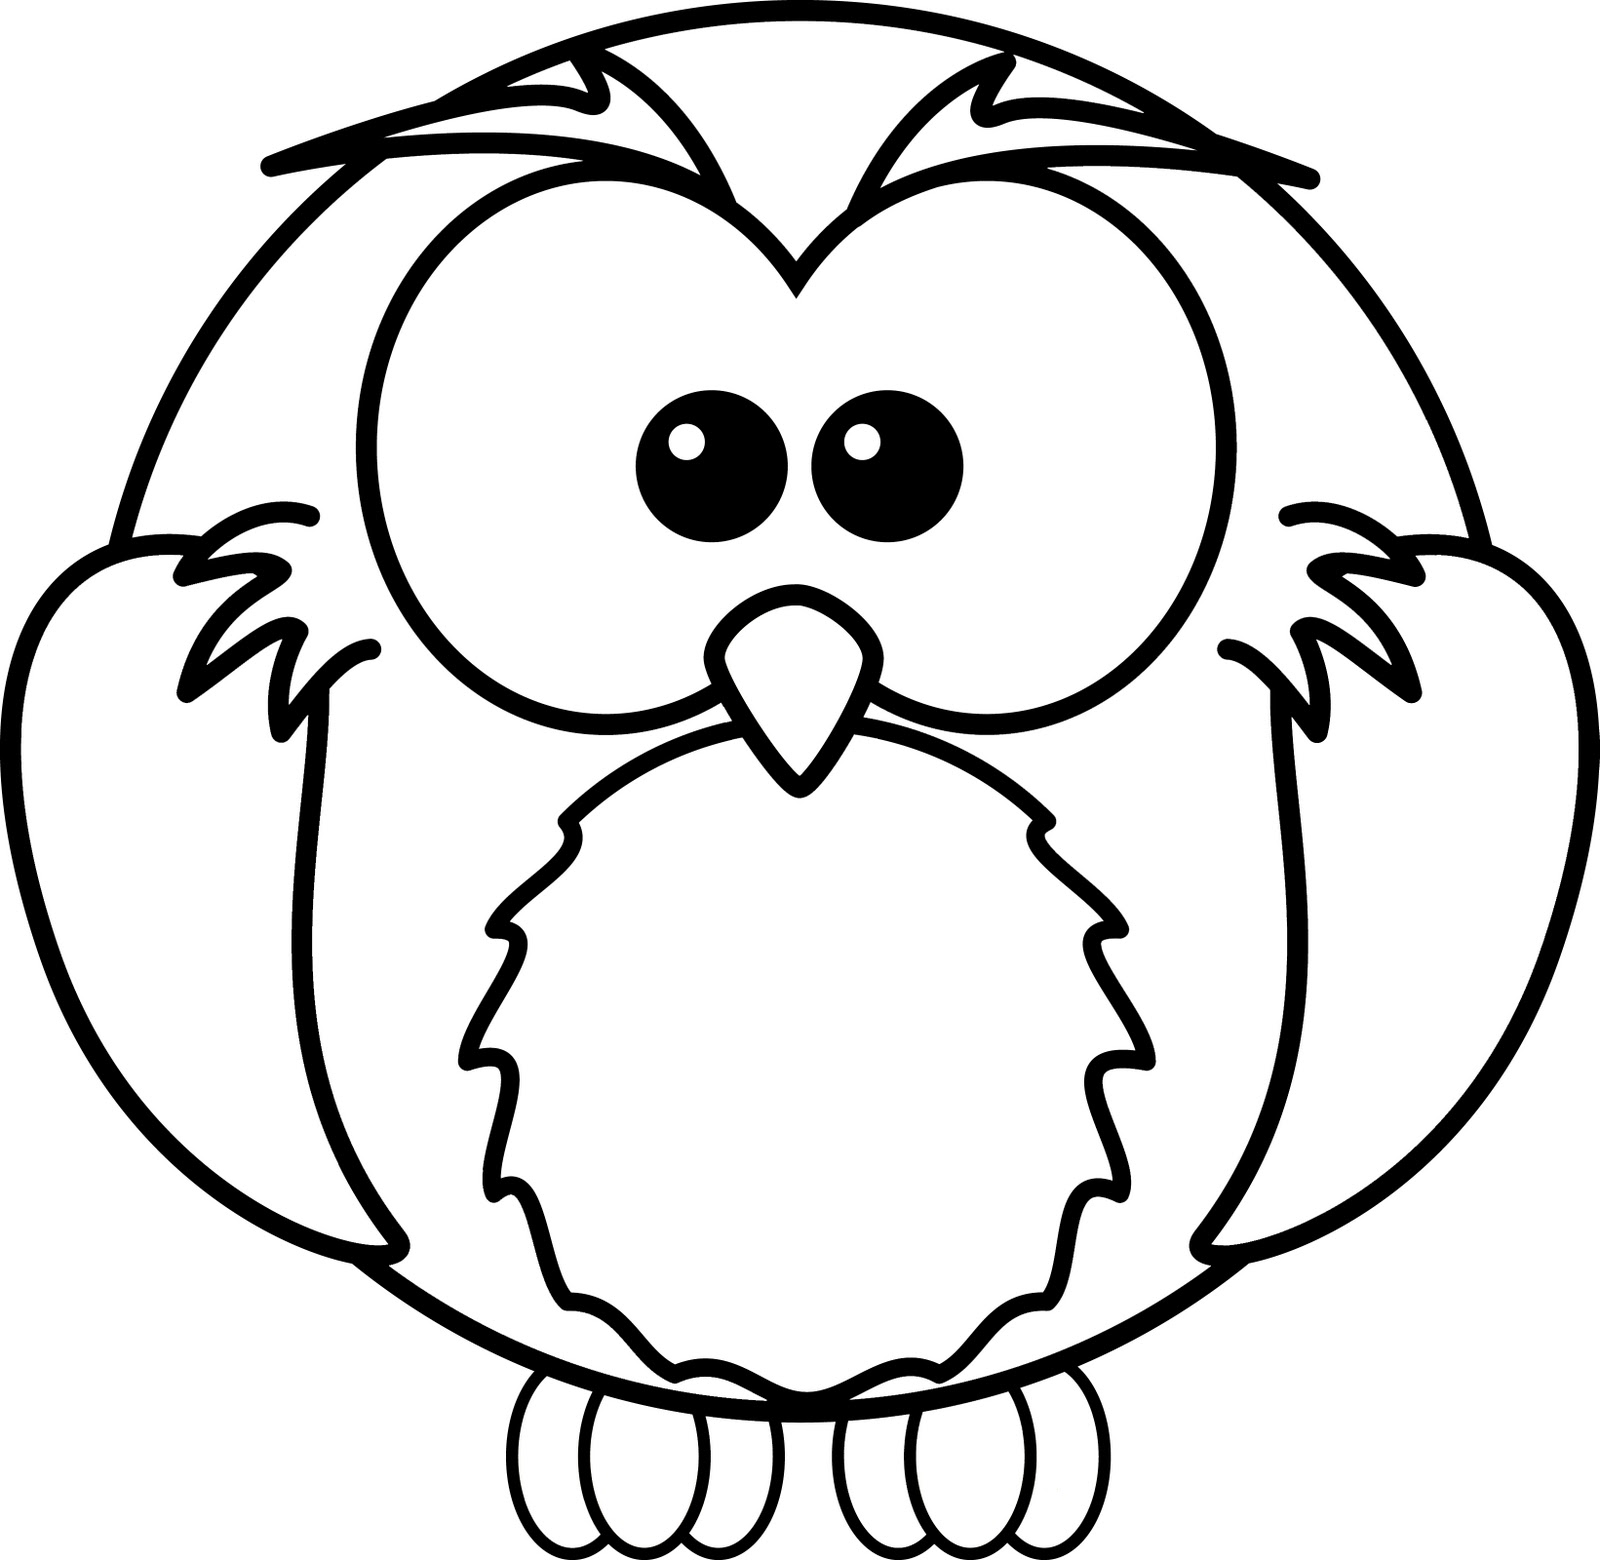 coloring book owl pictures coloring pages book owl pictures coloring